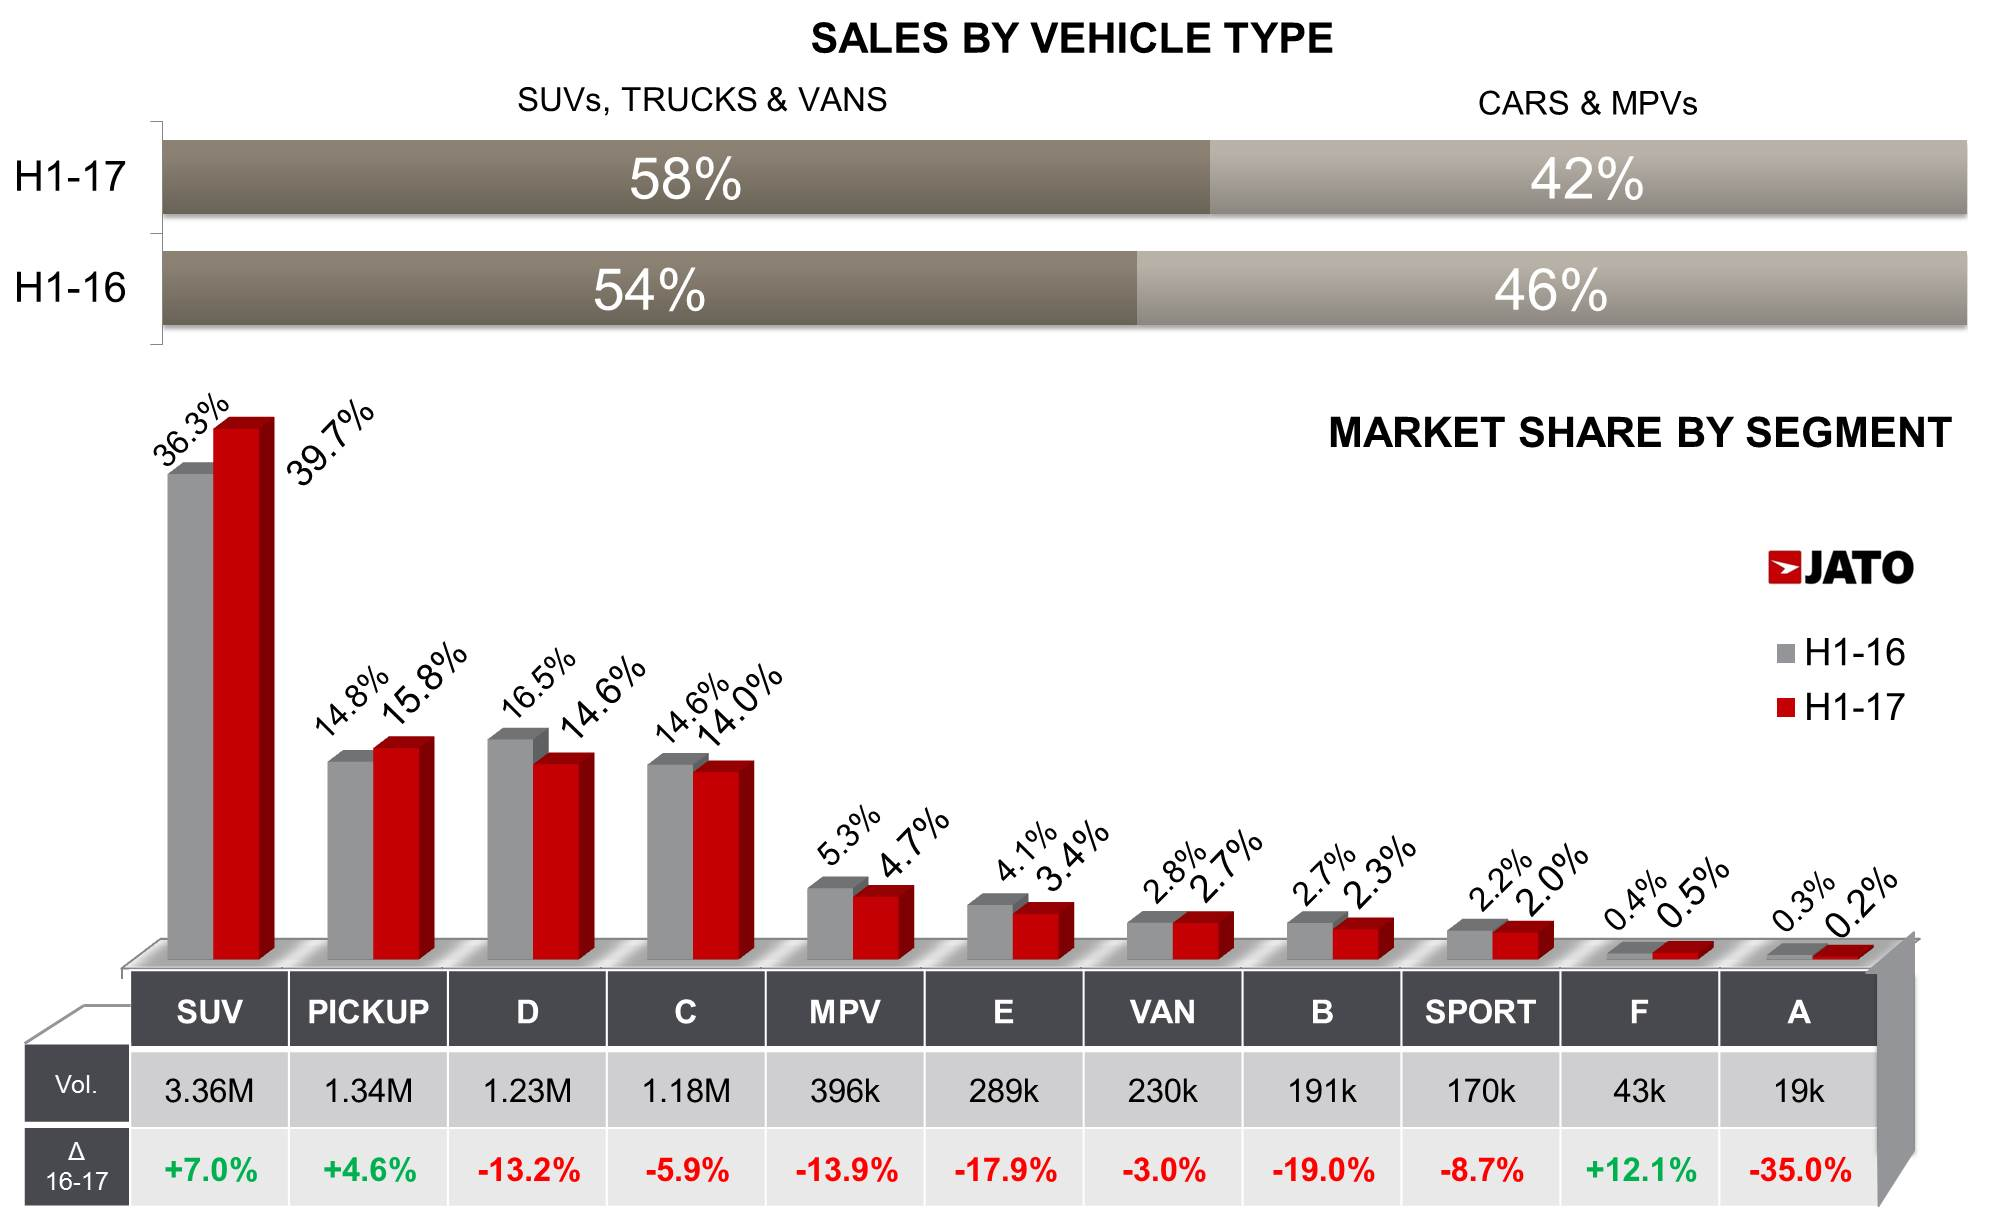 Rav4 Vs Rogue >> US Vehicle Sales fell by 2.1% in the first half of 2017; resurgent VW gained market share - JATO